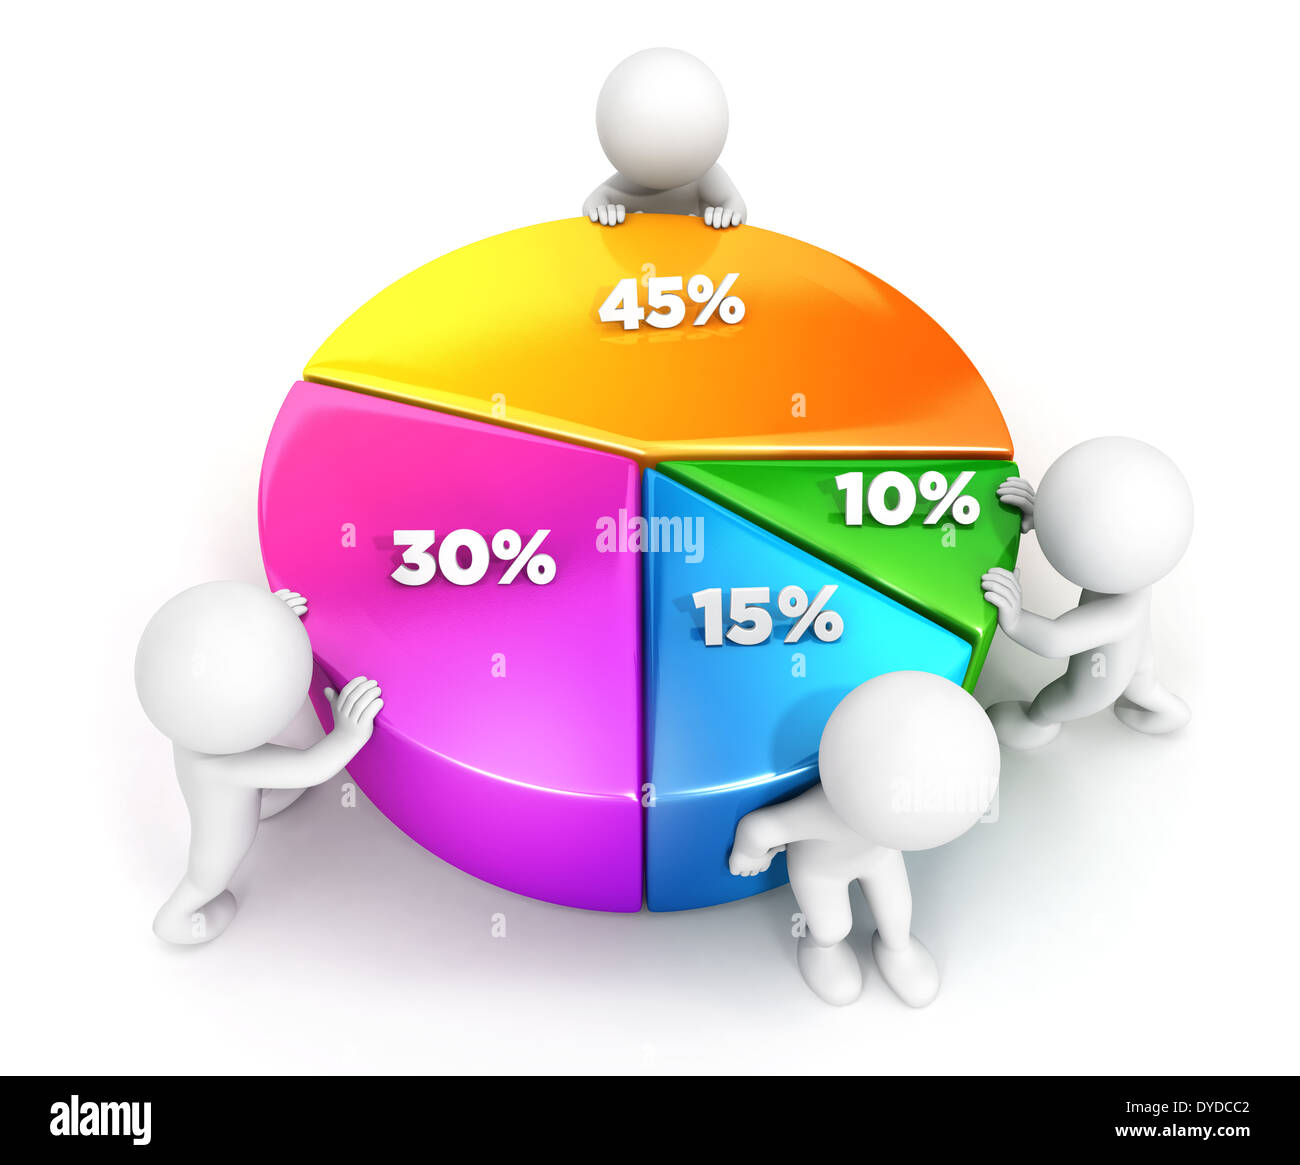 3d white people team pie chart isolated white background 3d image 3d white people team pie chart isolated white background 3d image nvjuhfo Choice Image